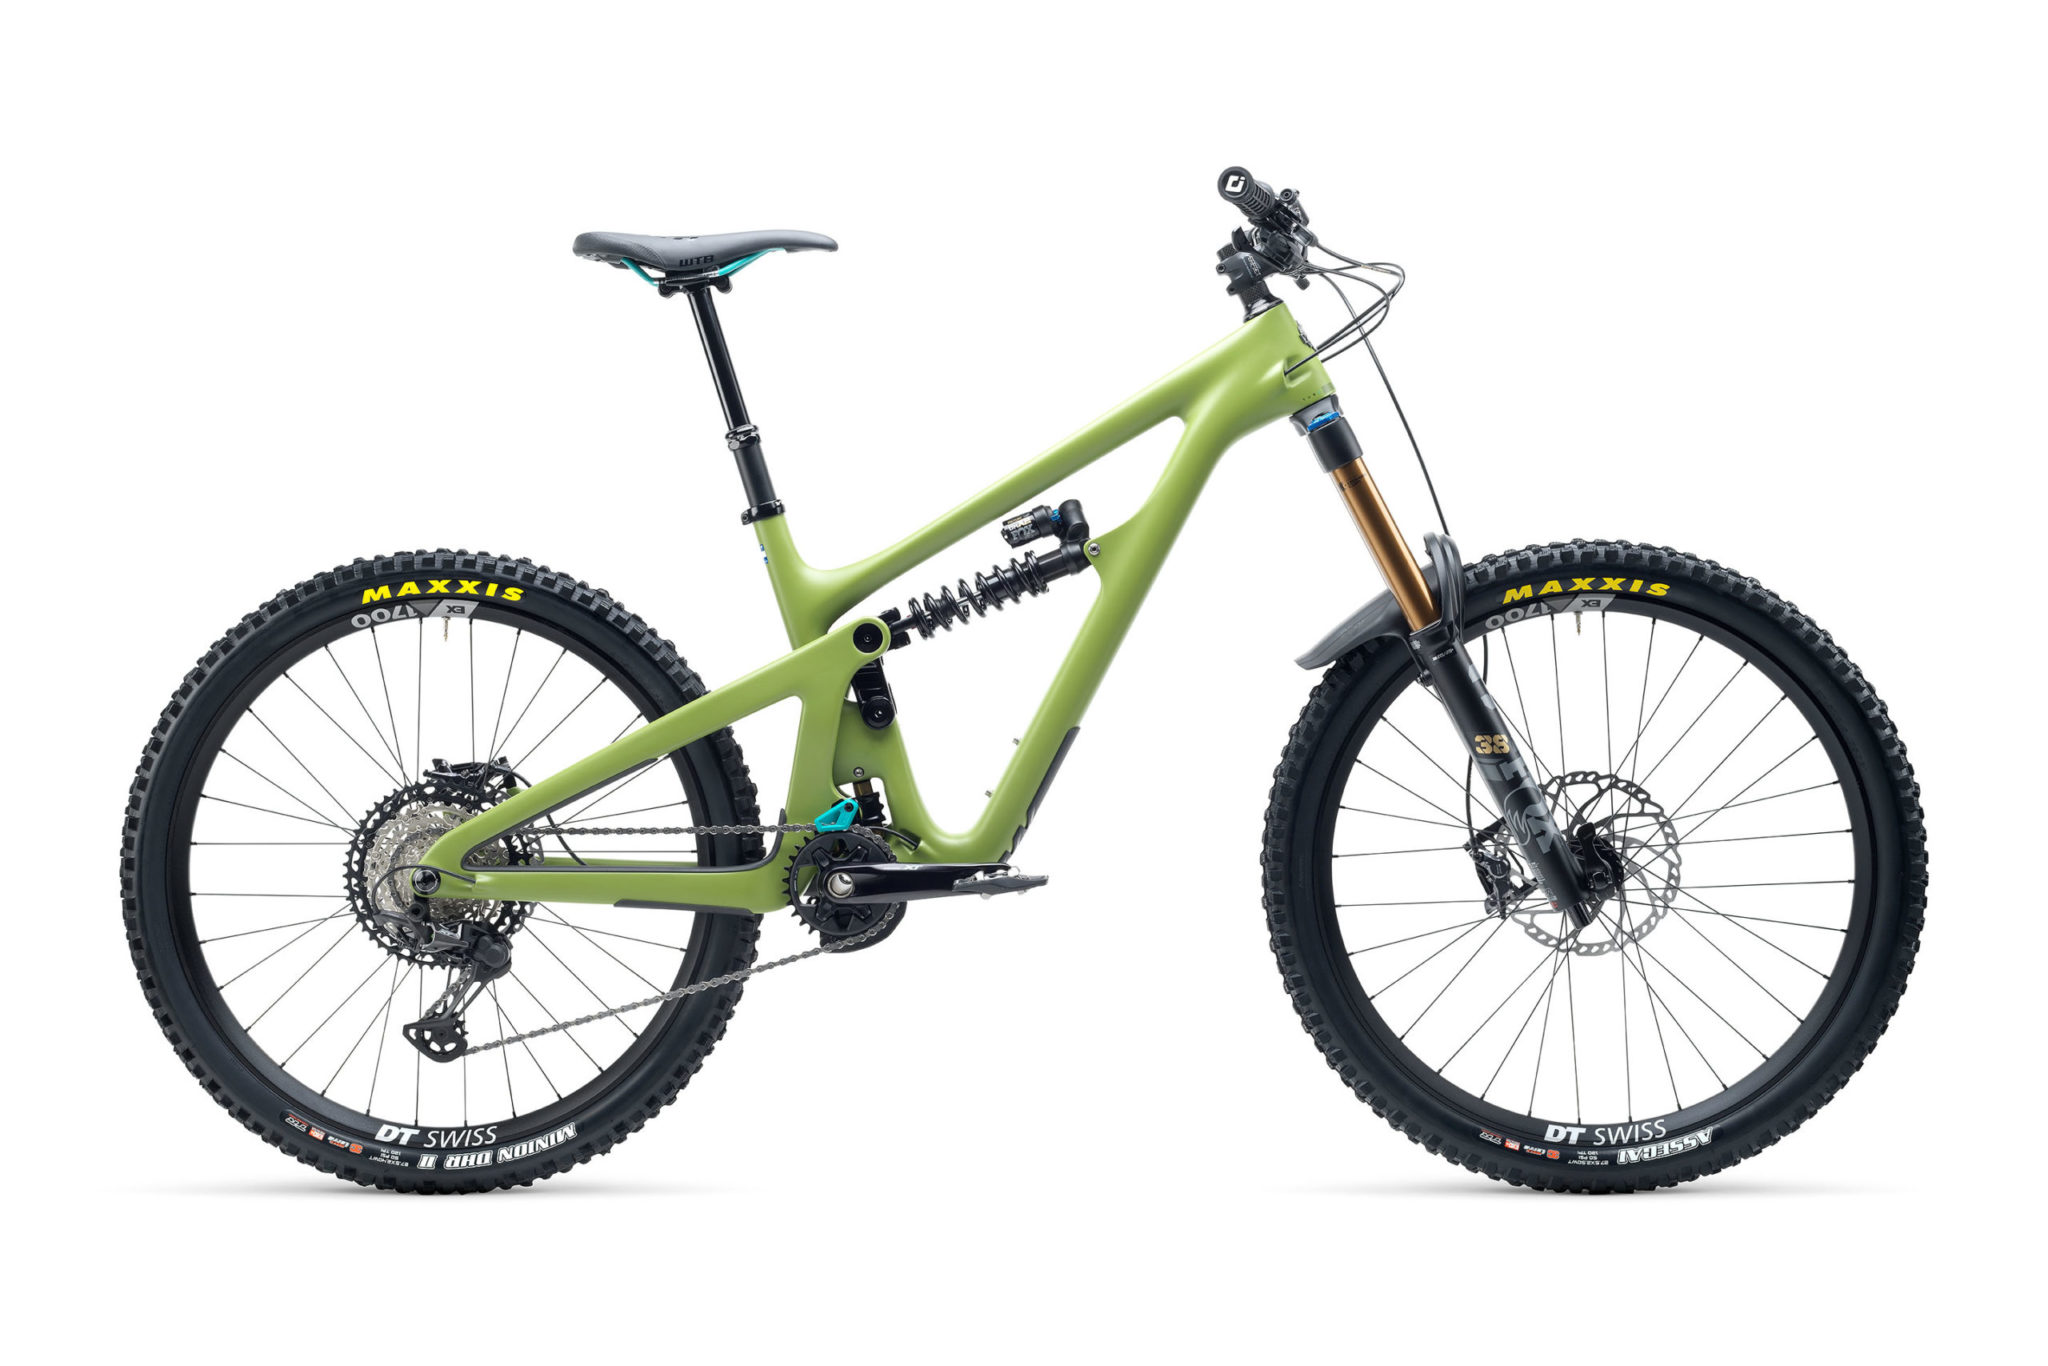 2021 YetiCycles SB165 T1 Moss scaled